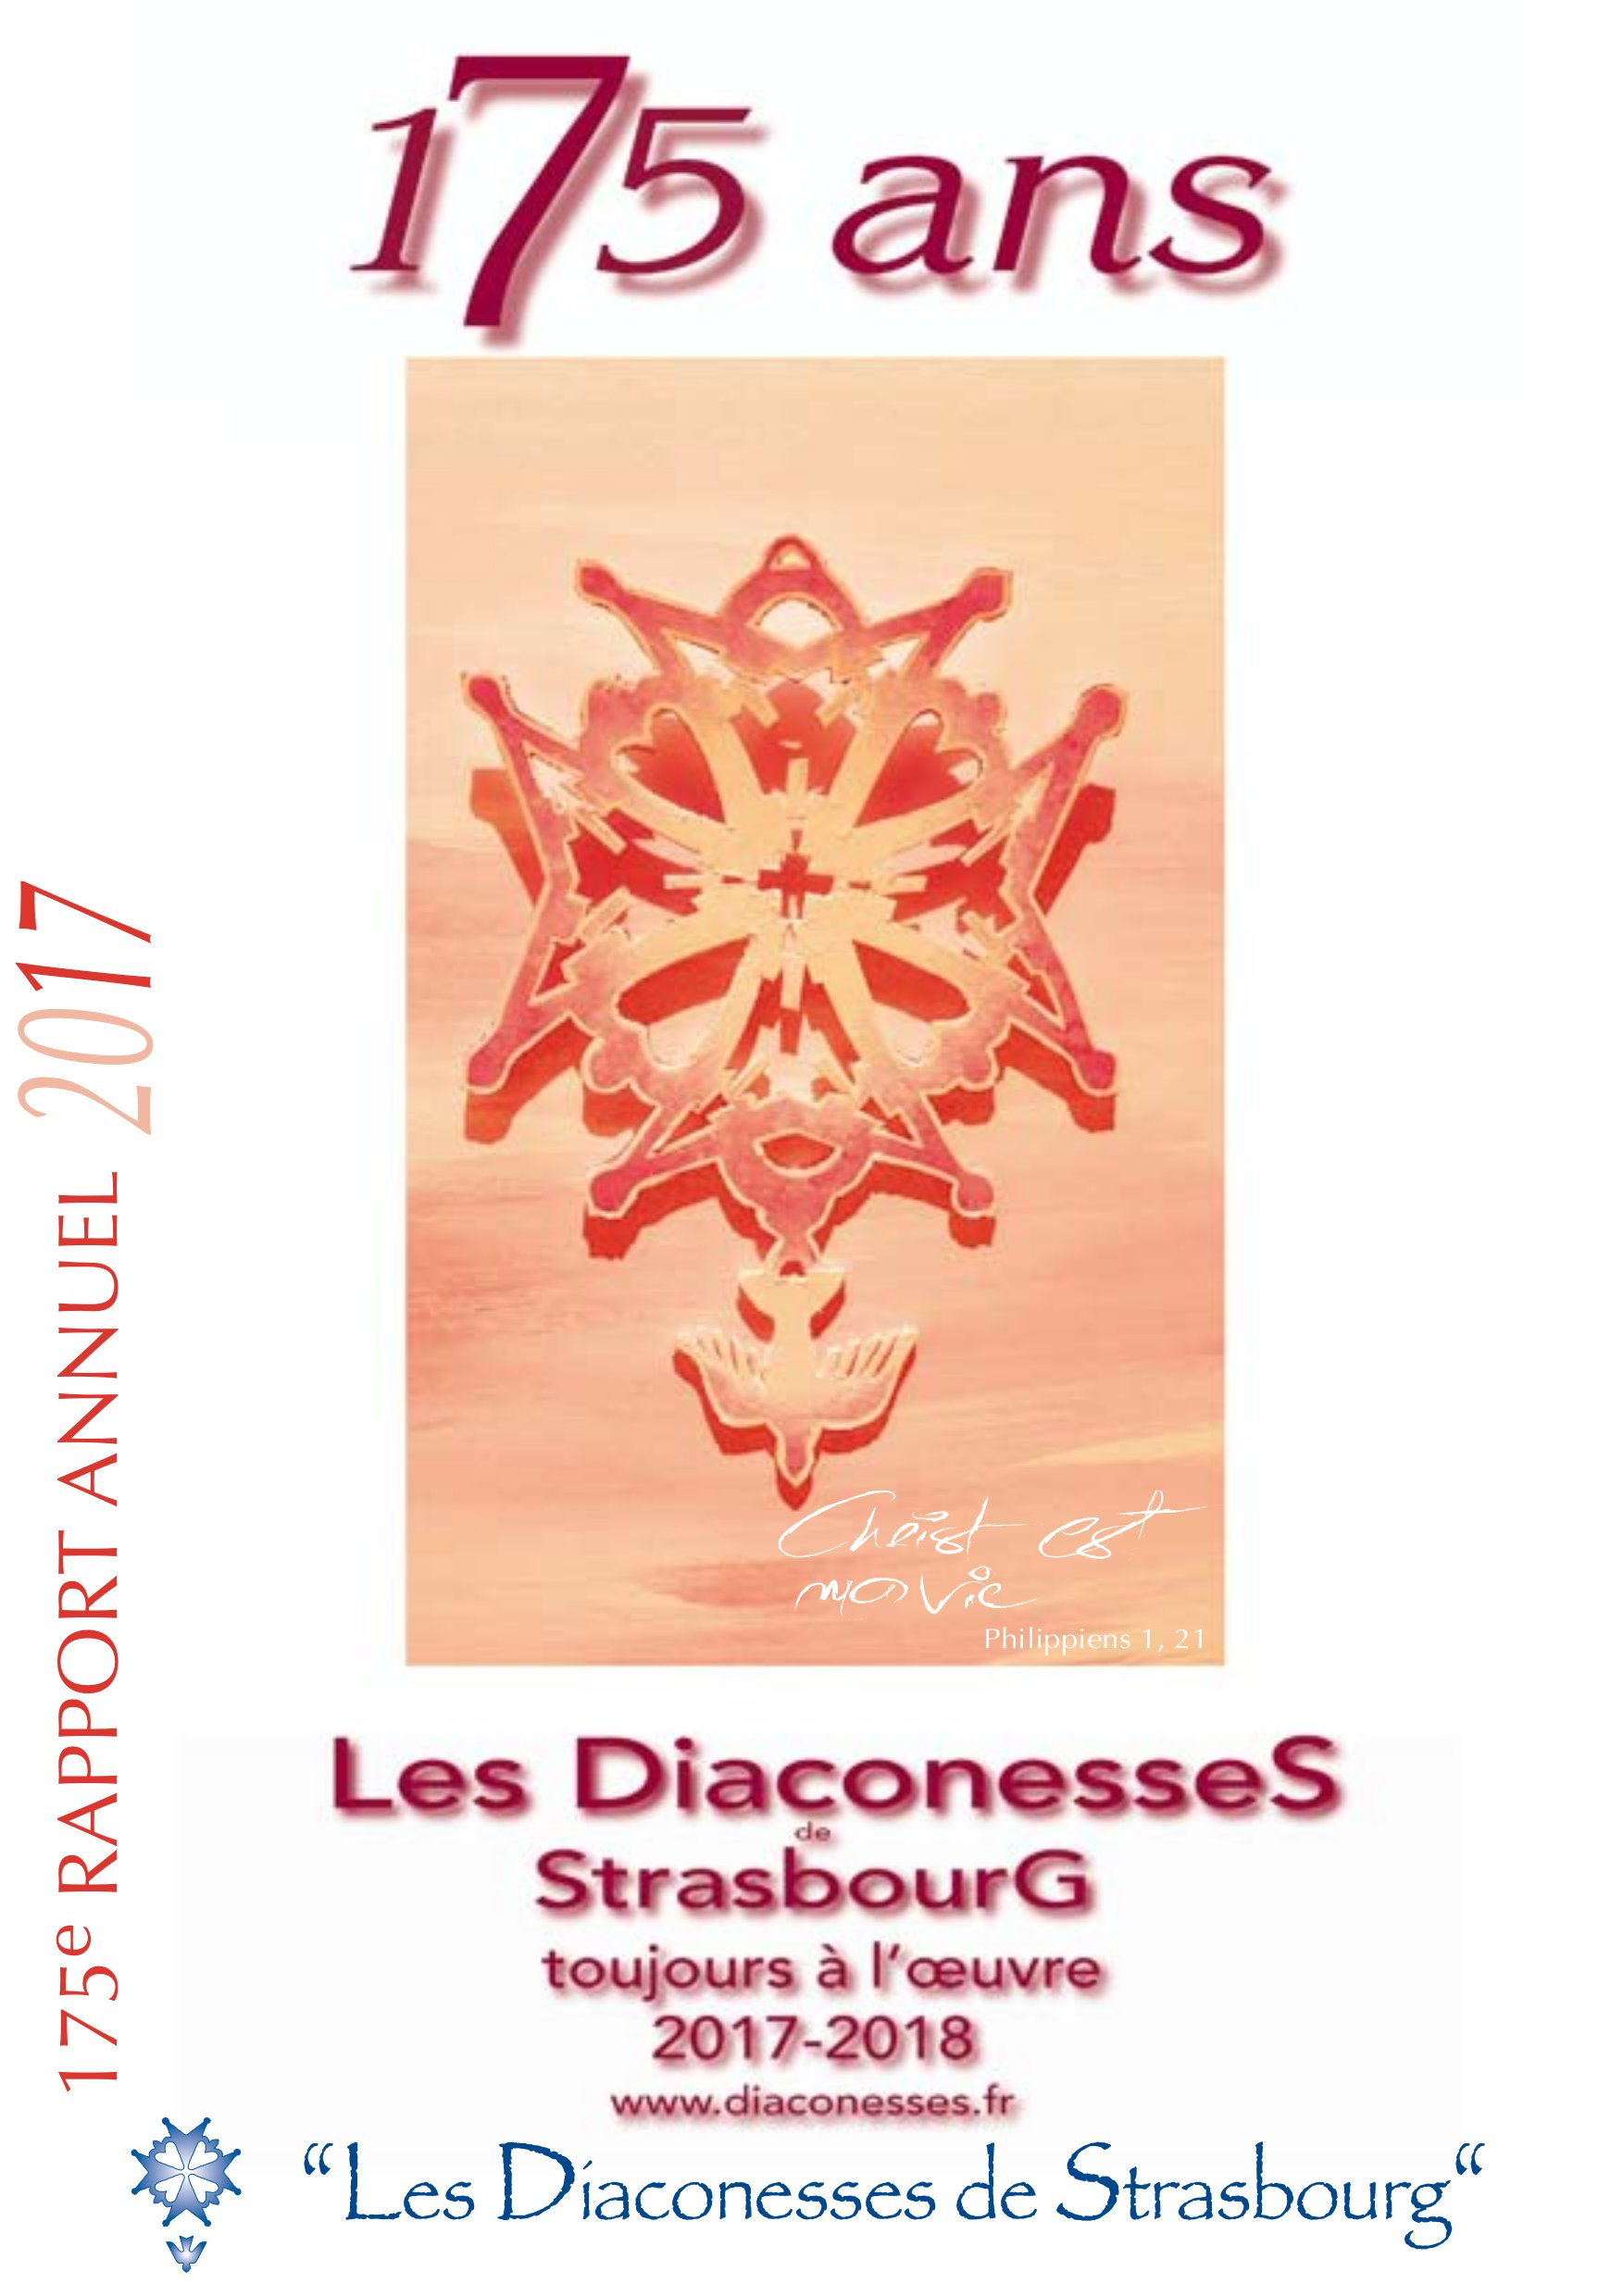 Rapport annuel Diaconesses 2017